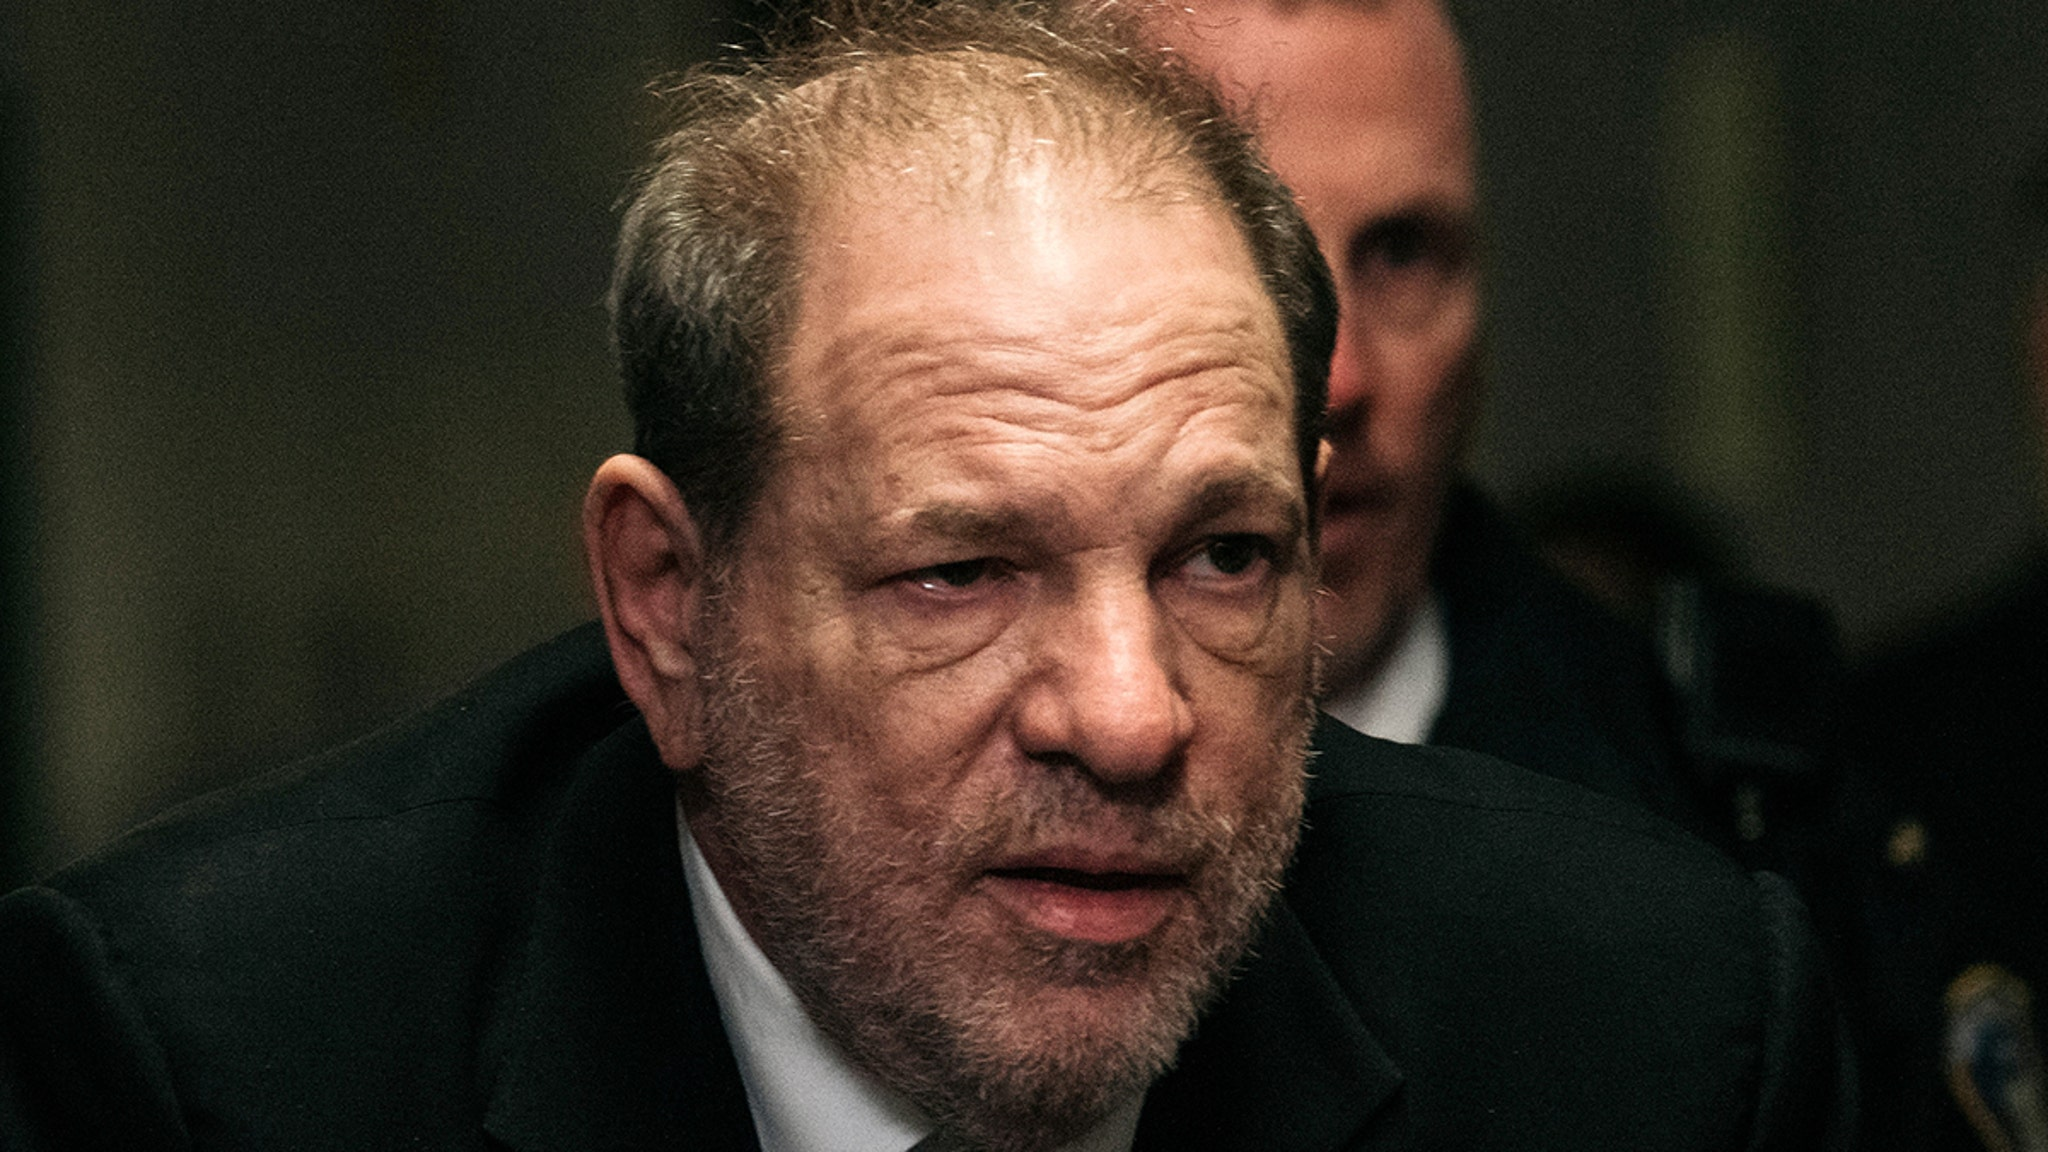 Harvey Weinstein Wants Mistrial, Claims Juror Wrote Novel 'Age of Consent'